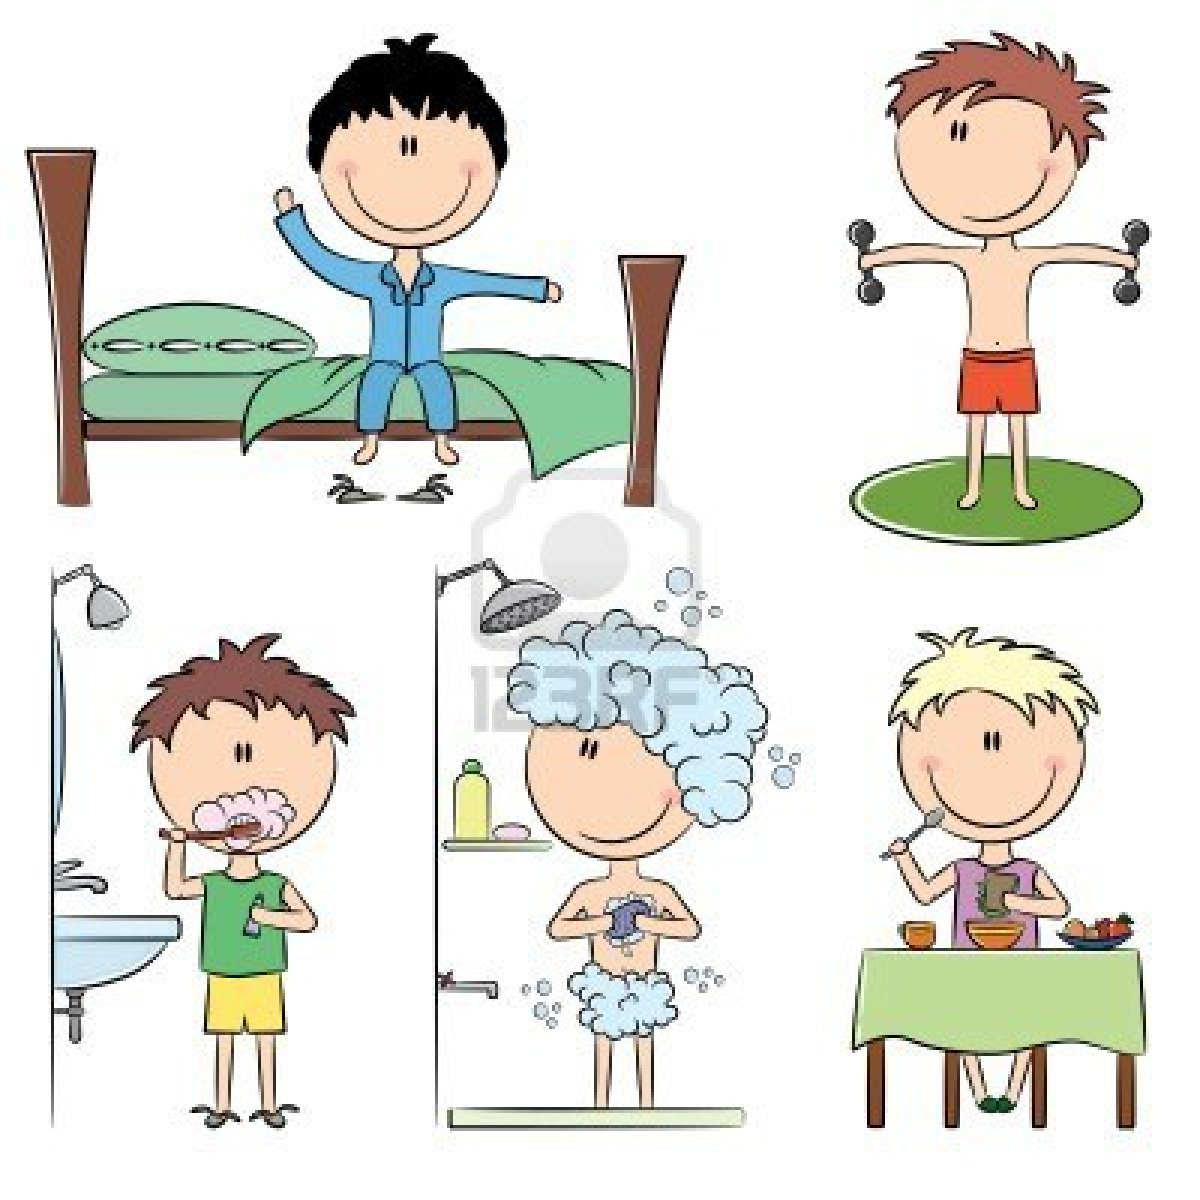 8663576-daily-morning-boys-life-including-wake-up-morning-exercises-teeth-cleaning-shower-and-breakfast.jpg